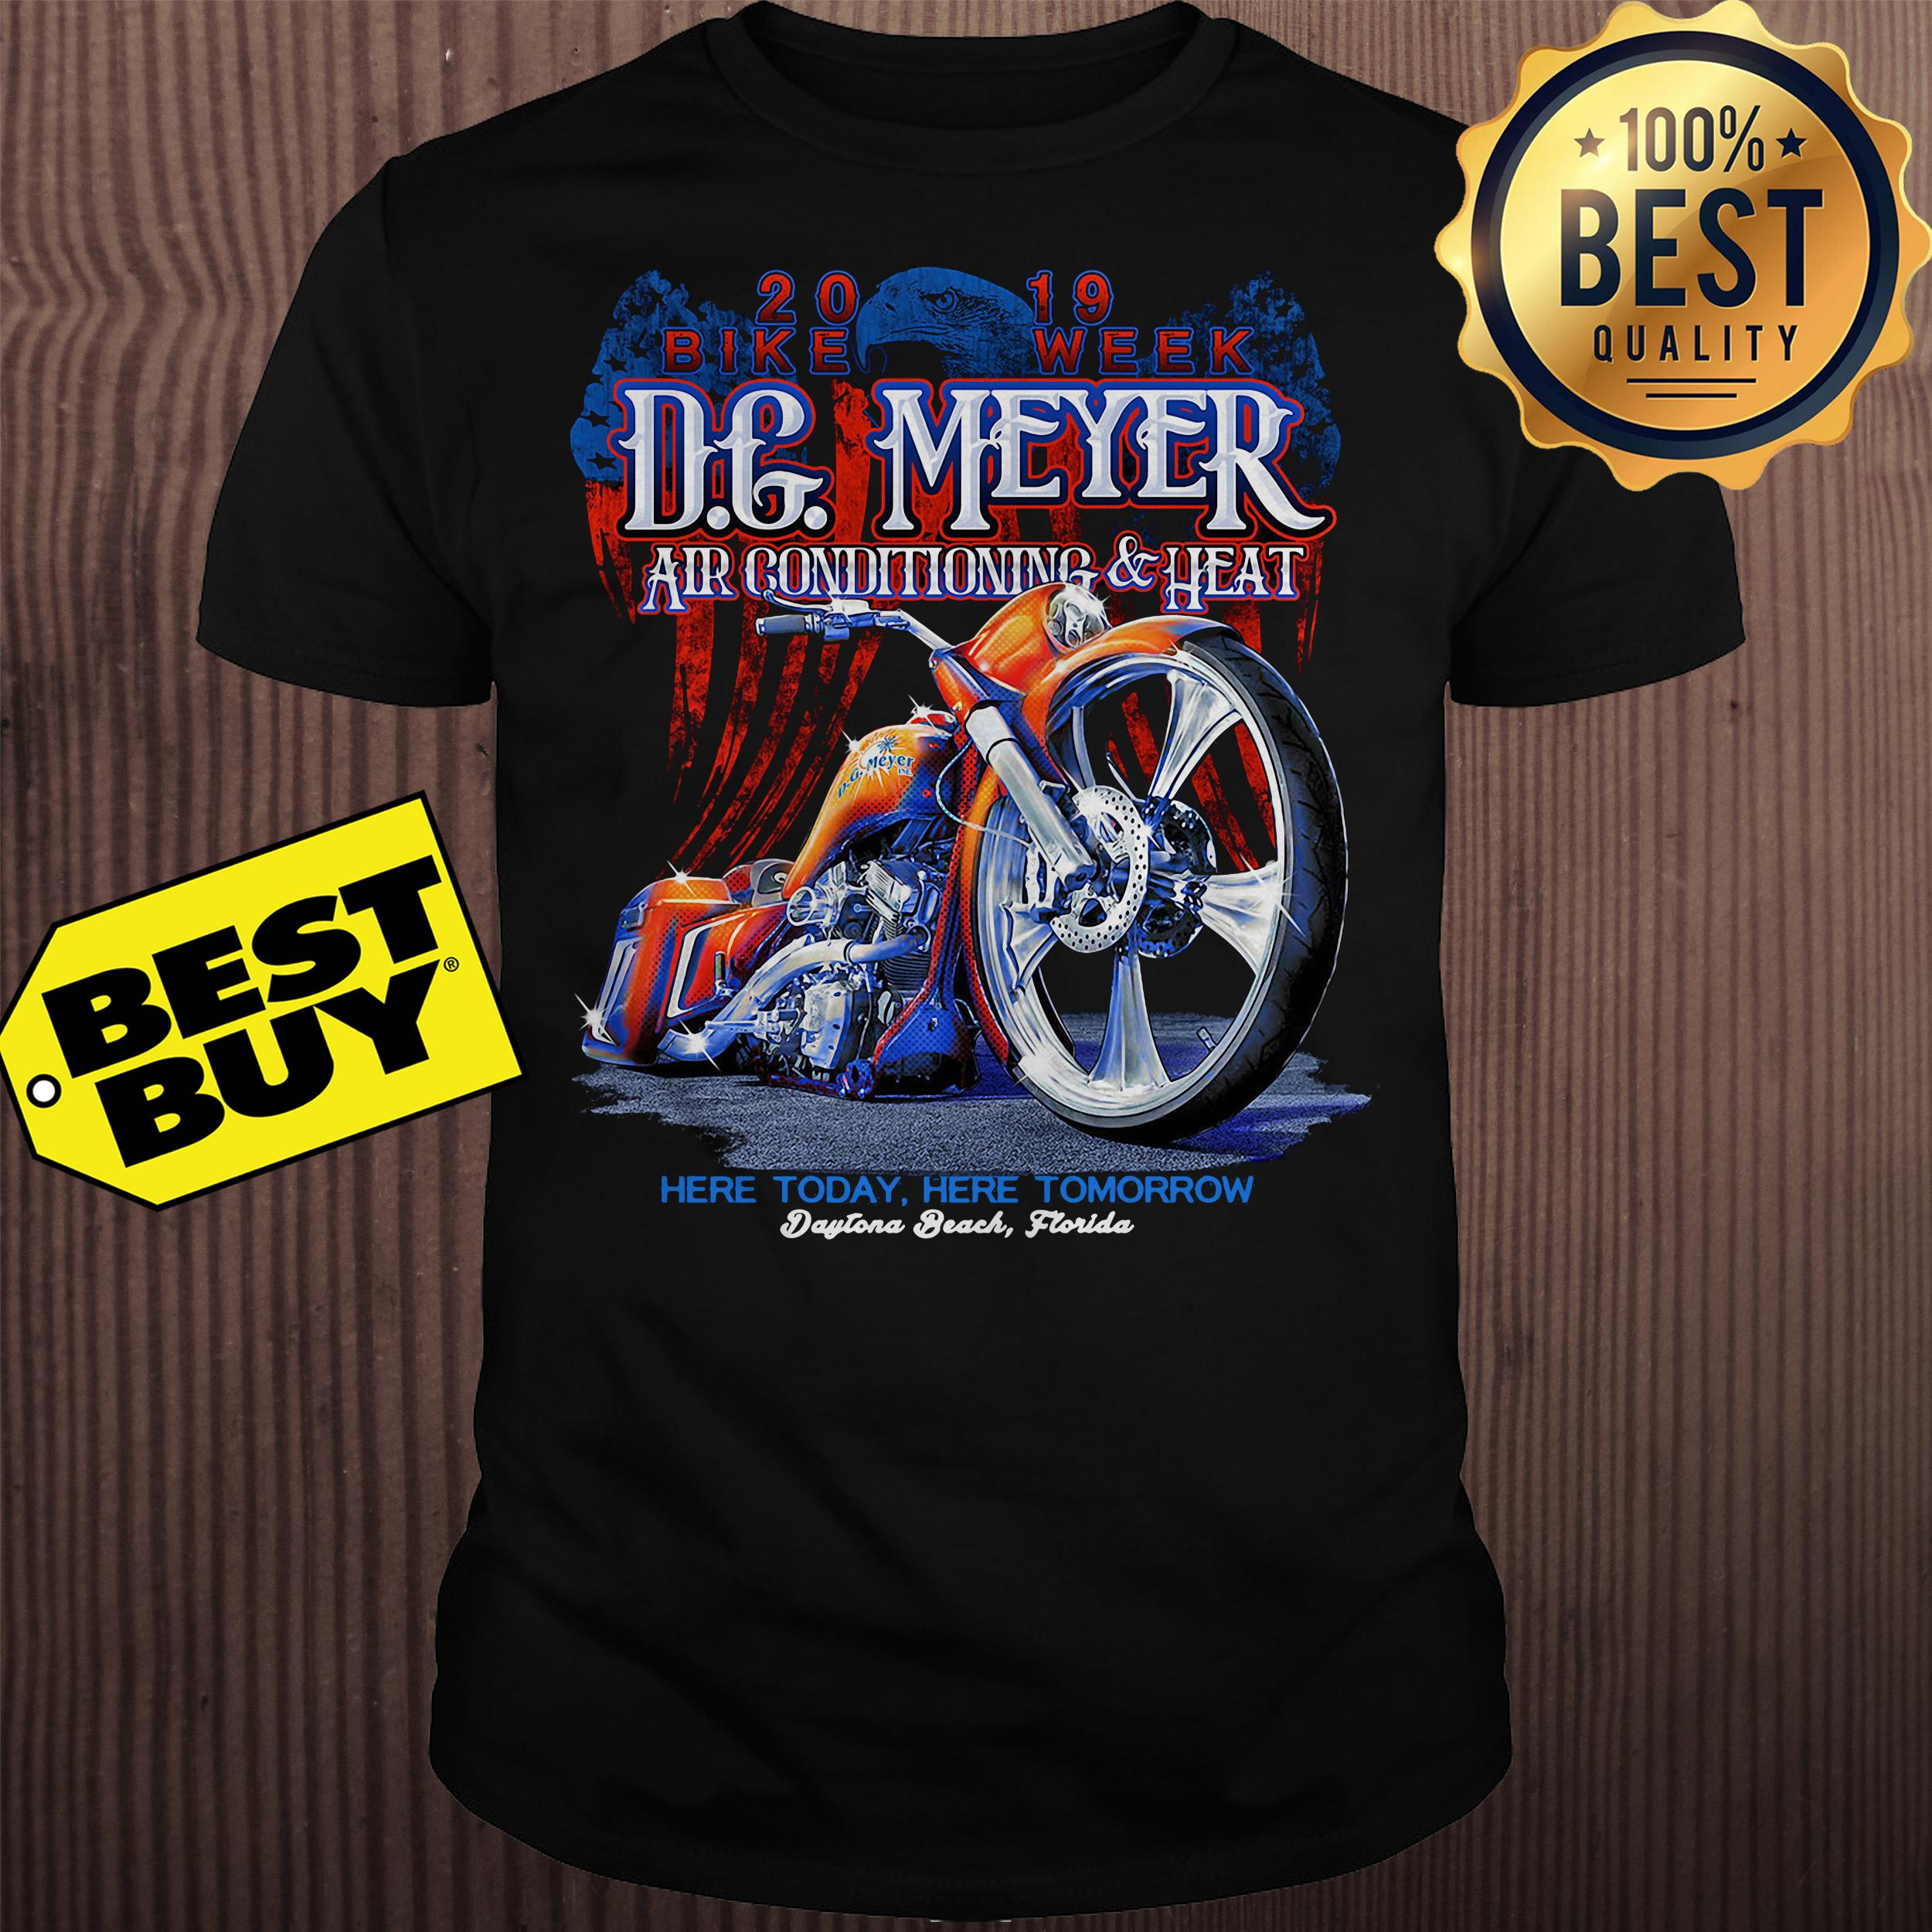 DG Meyer Air conditioning heat here today here tomorrow shirt